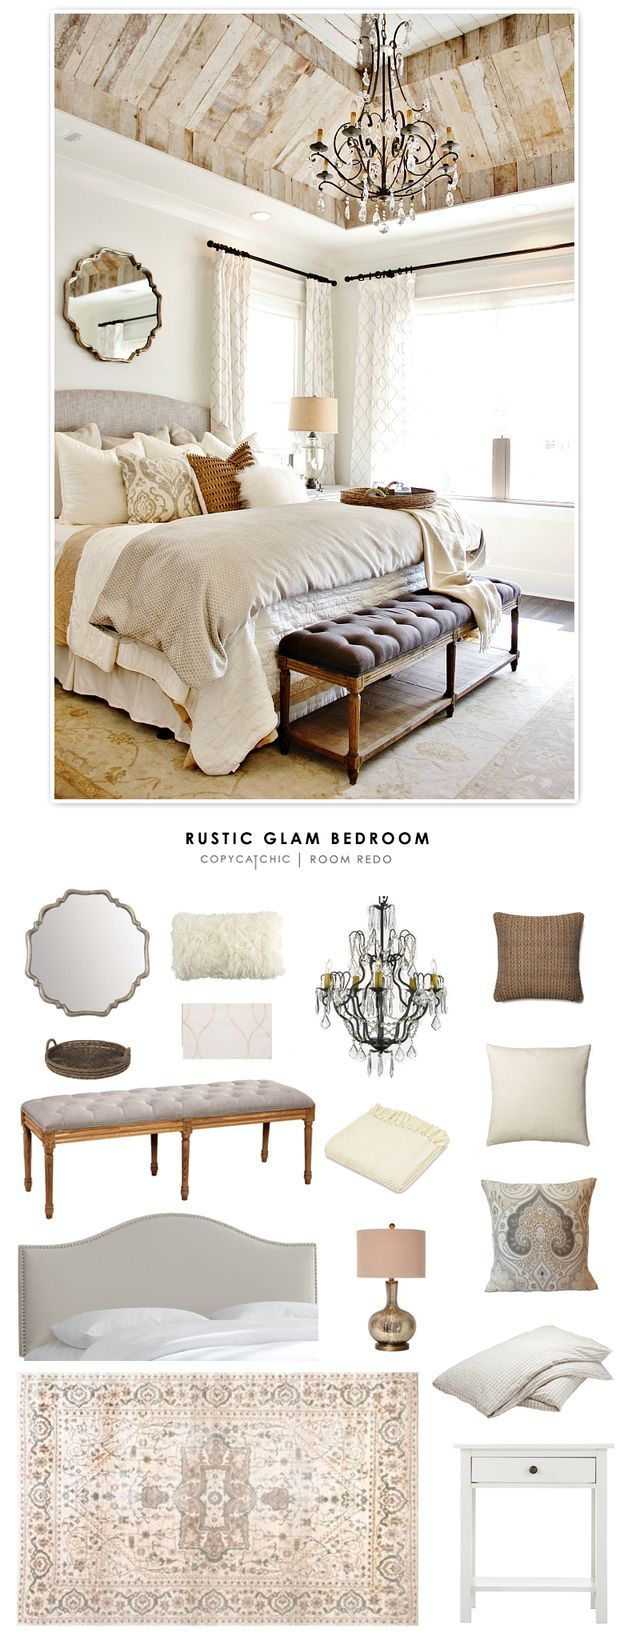 Copy cat chic room redo rustic glam bedroom copy cat How to redo a bedroom cheap